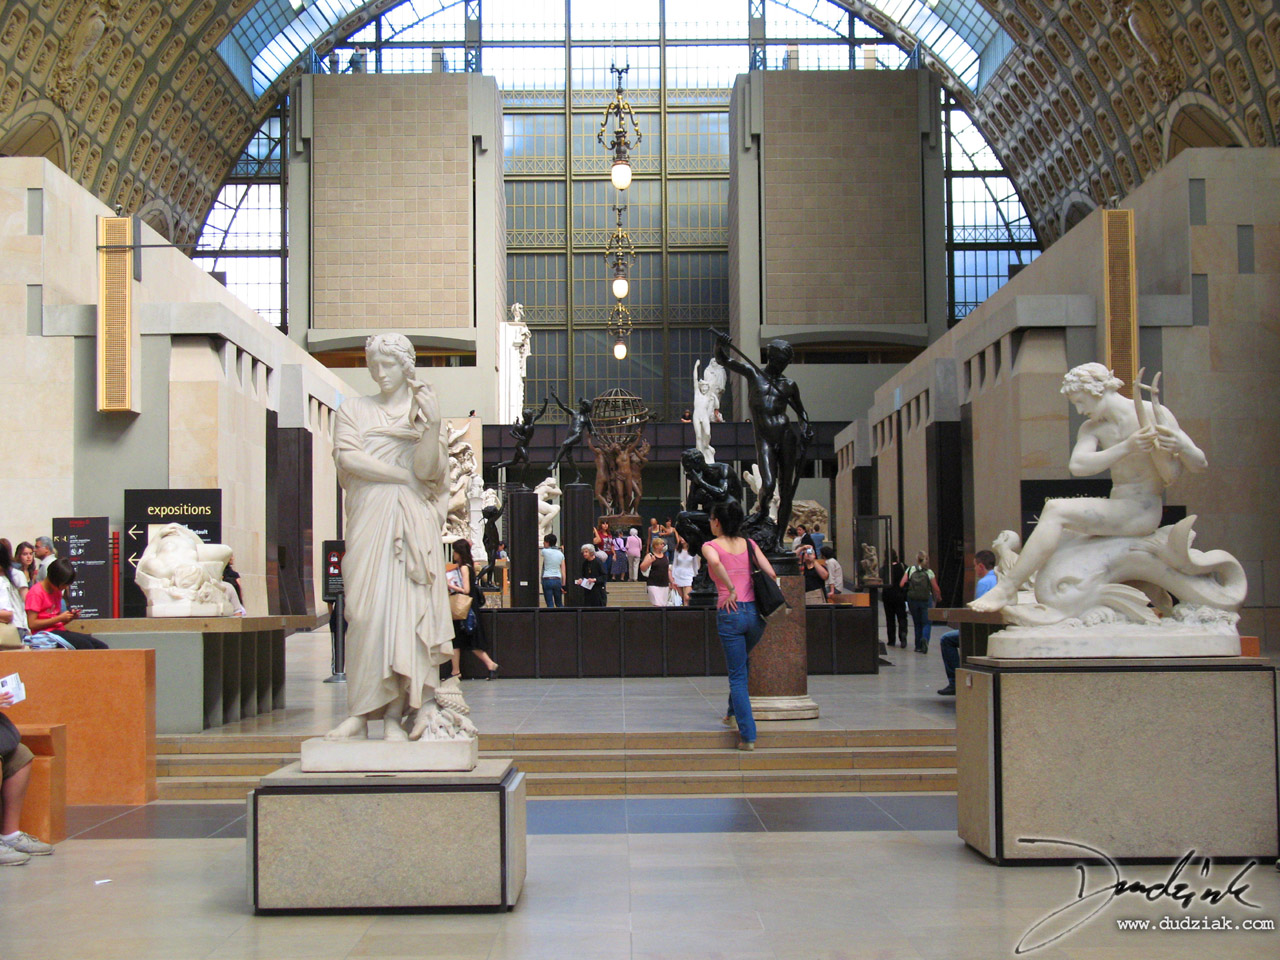 sculptures,  Musée d'Orsay,  France,  Orsay Museum,  Paris